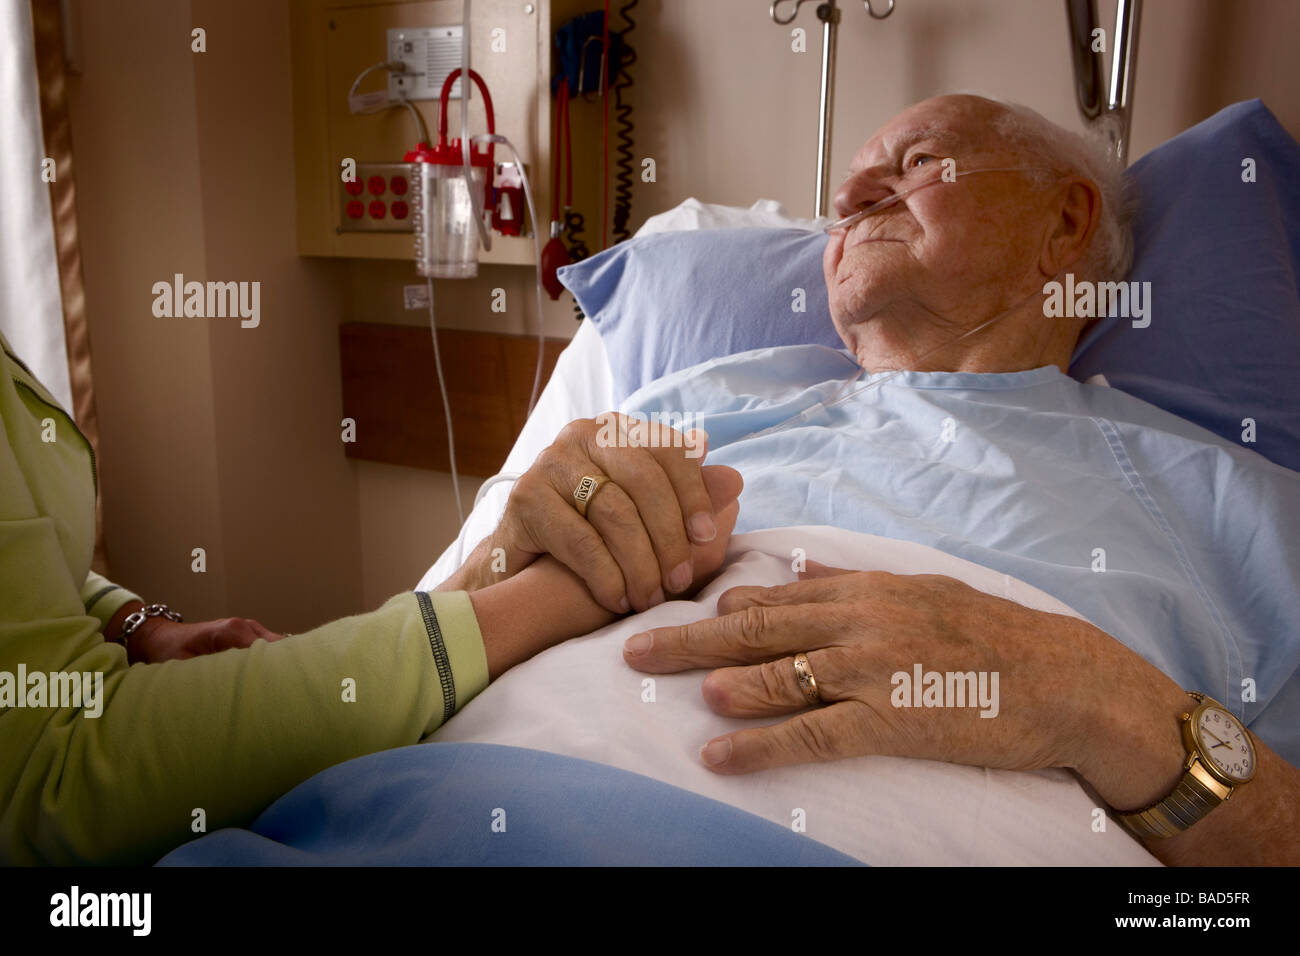 Man in a hospital bed; Man's hand being held by a woman - Stock Image